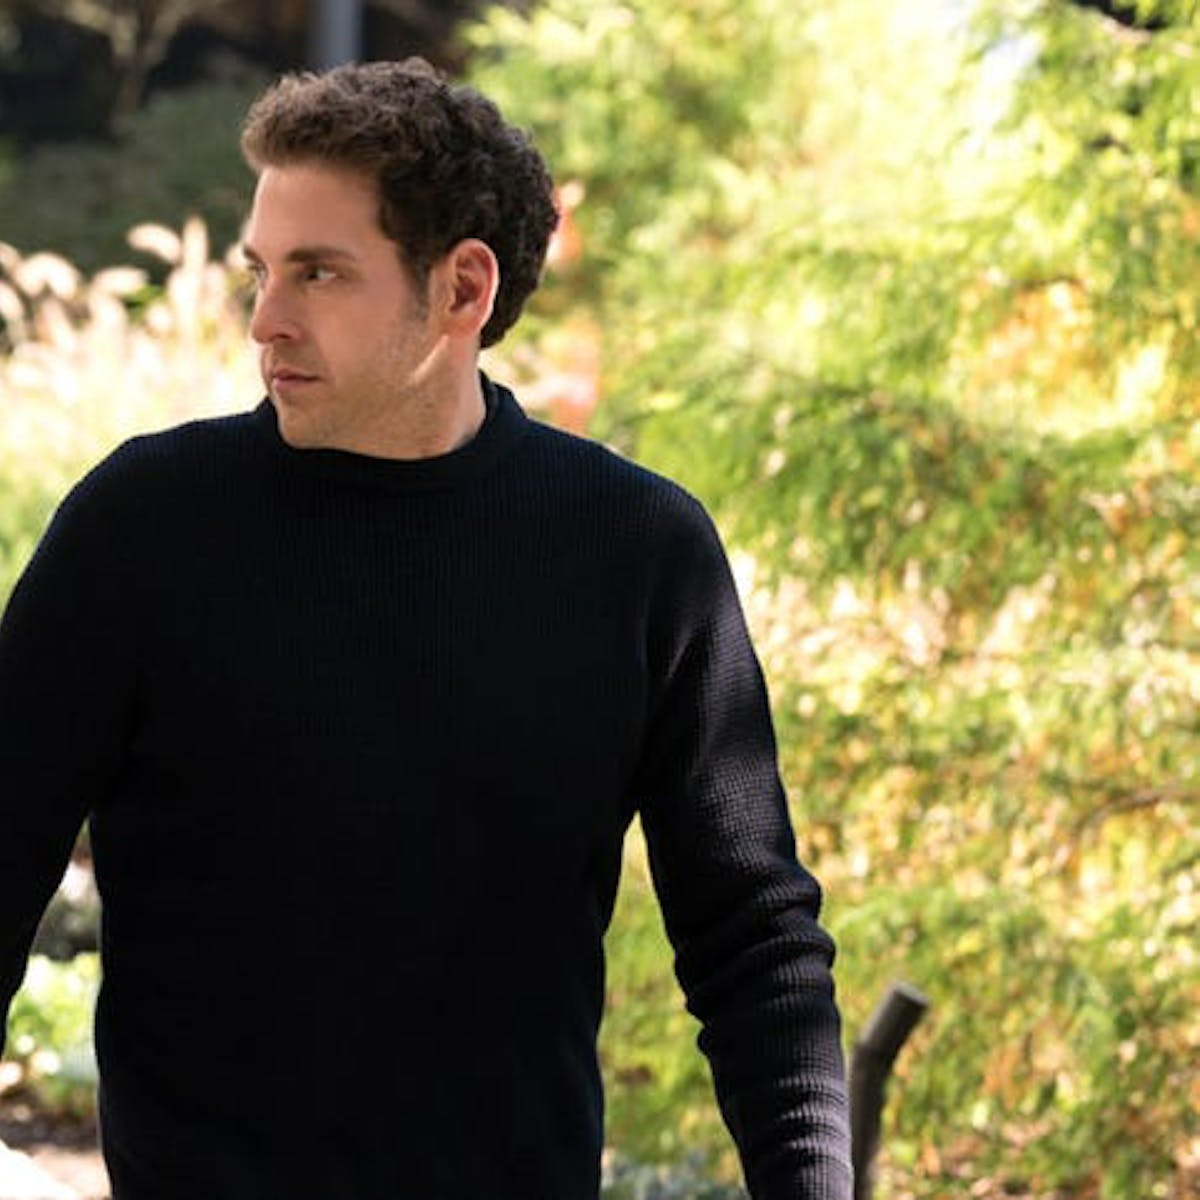 Maniac Netflix Ending Explained, Spoilers: Are They Still Dreaming